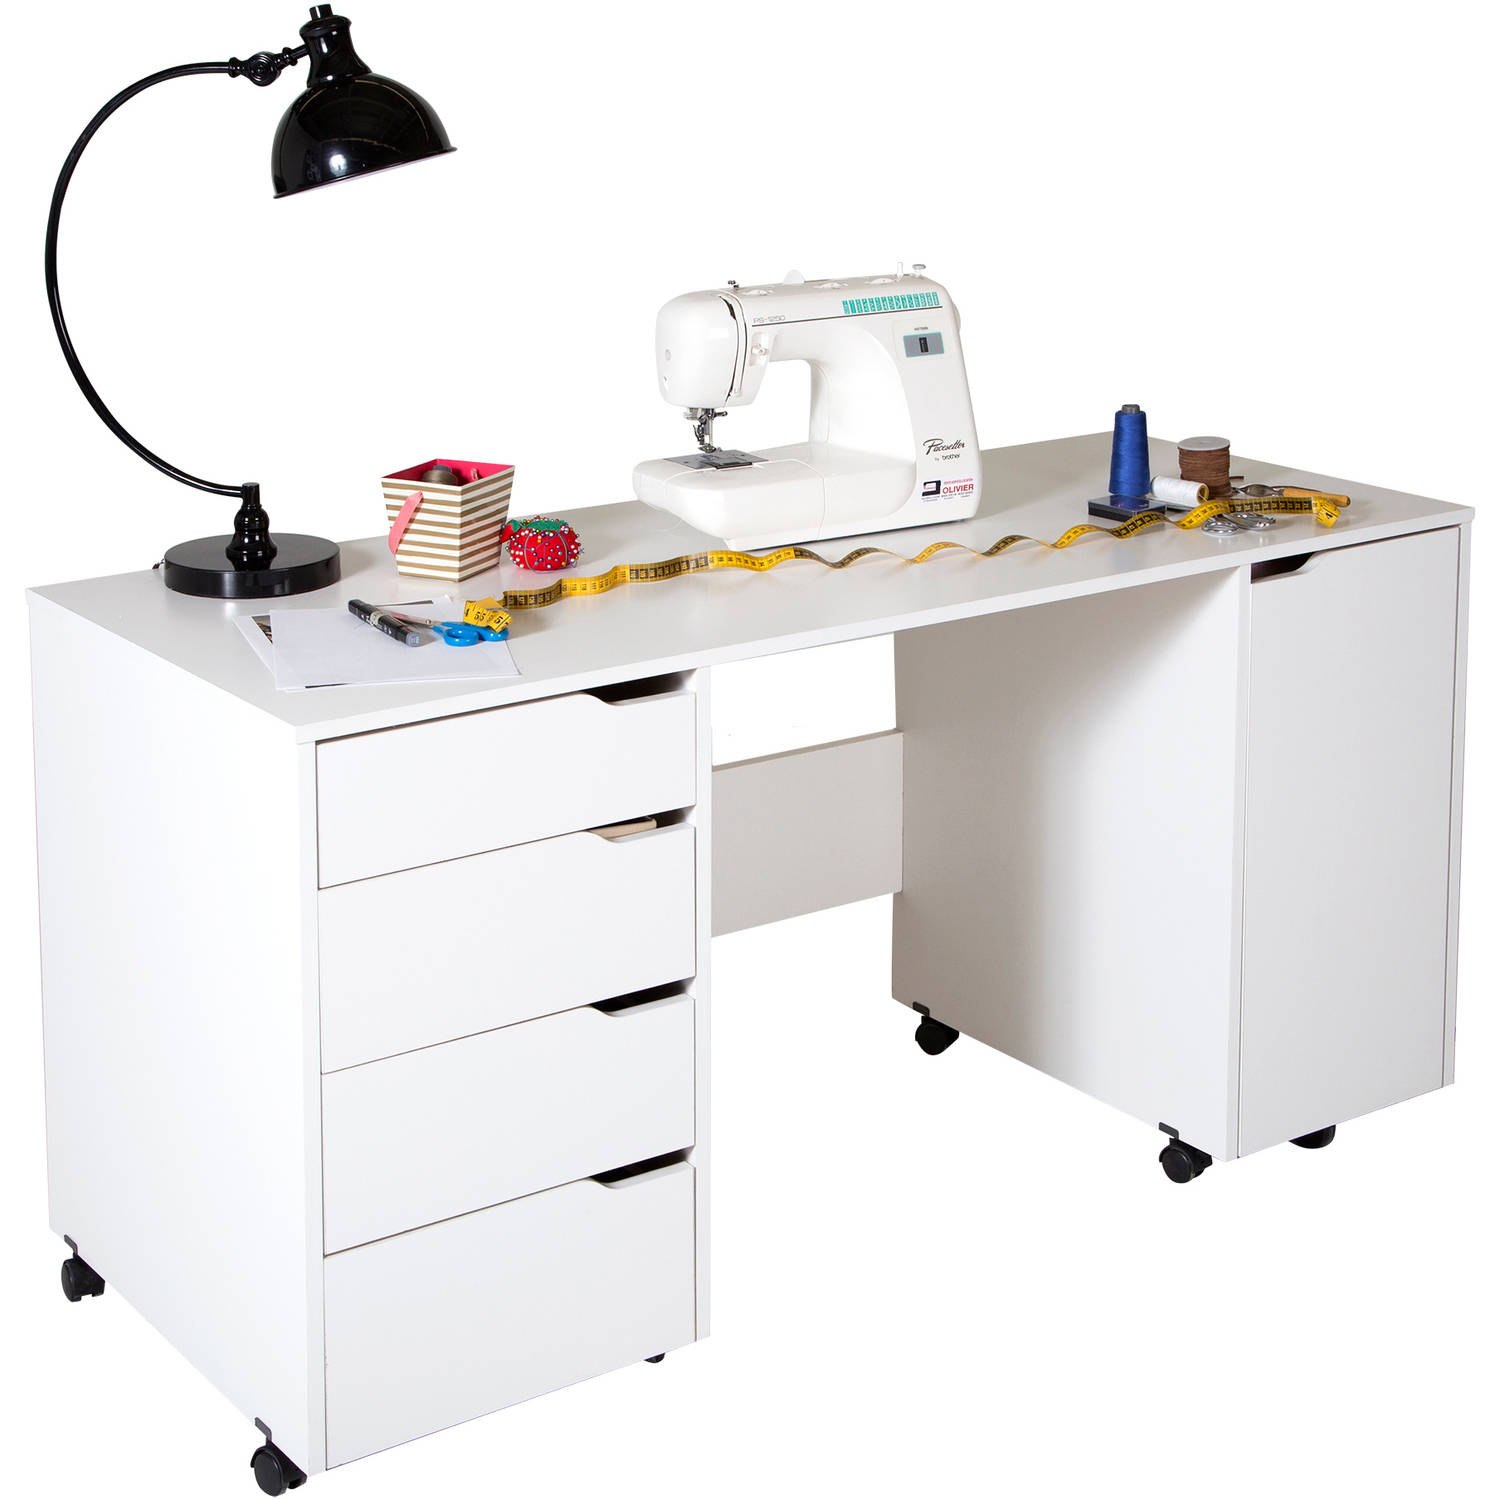 Table On Wheels South Shore Crea Sewing Craft Table On Wheels White